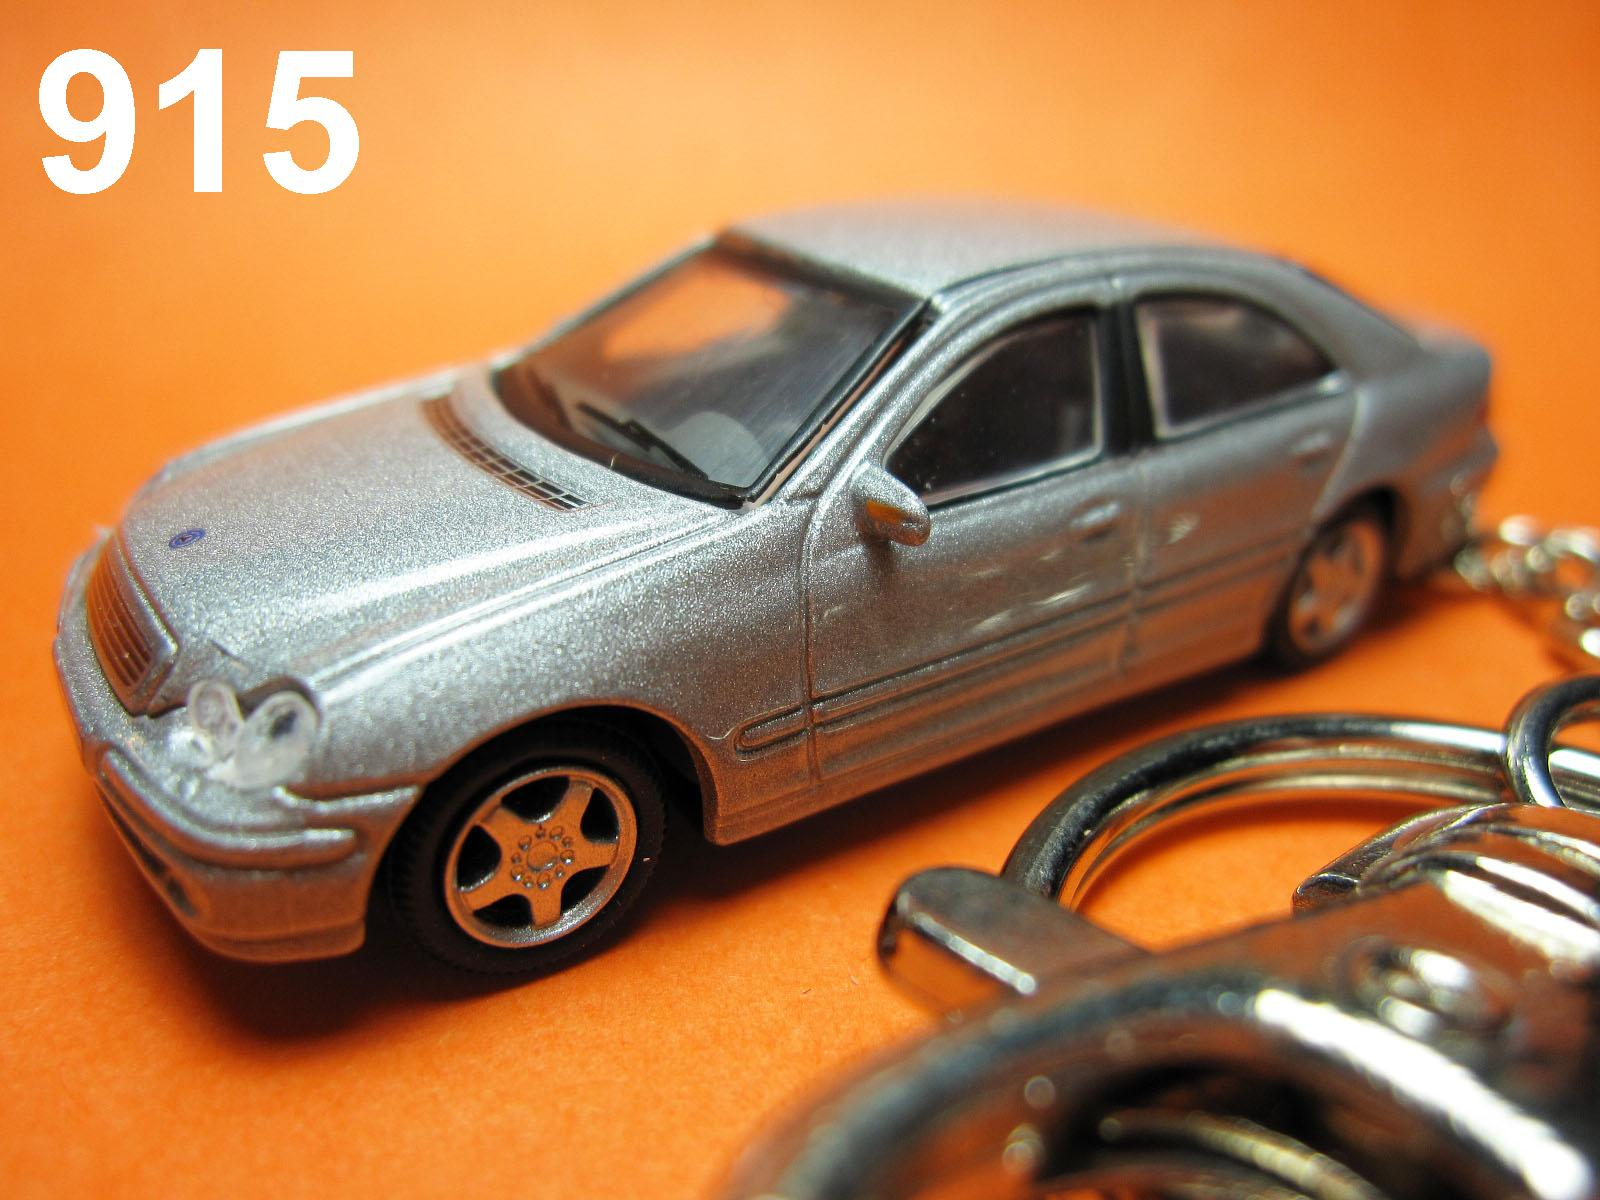 Mercedes-Benz C-Class W203 (Silver) Die-cast Key Chain